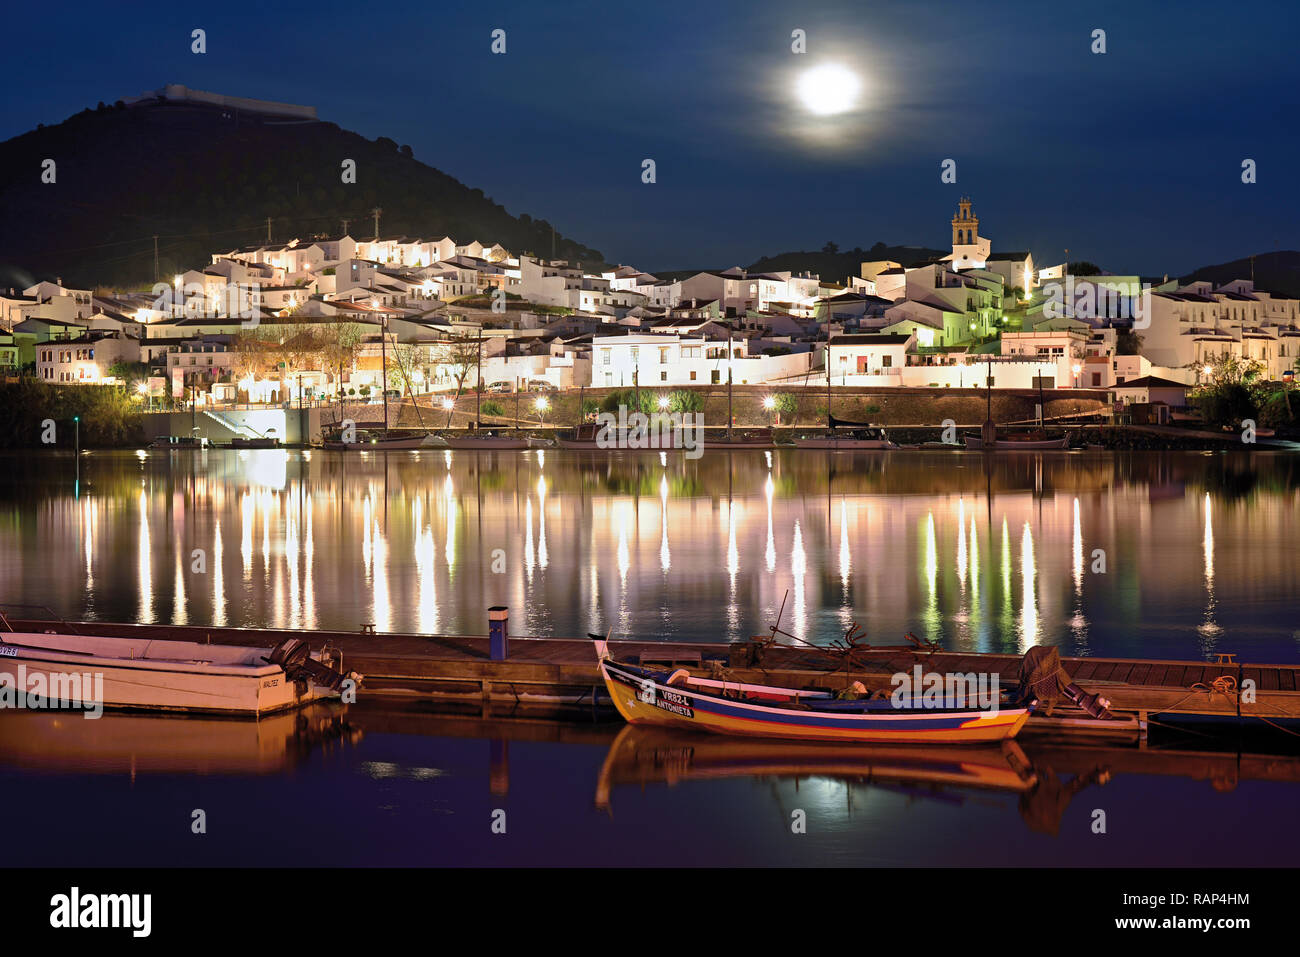 Romantic white washed riverside village with moonlight and wooden fishing boats anchoring at quay (view from Portugal to Spain) - Stock Image